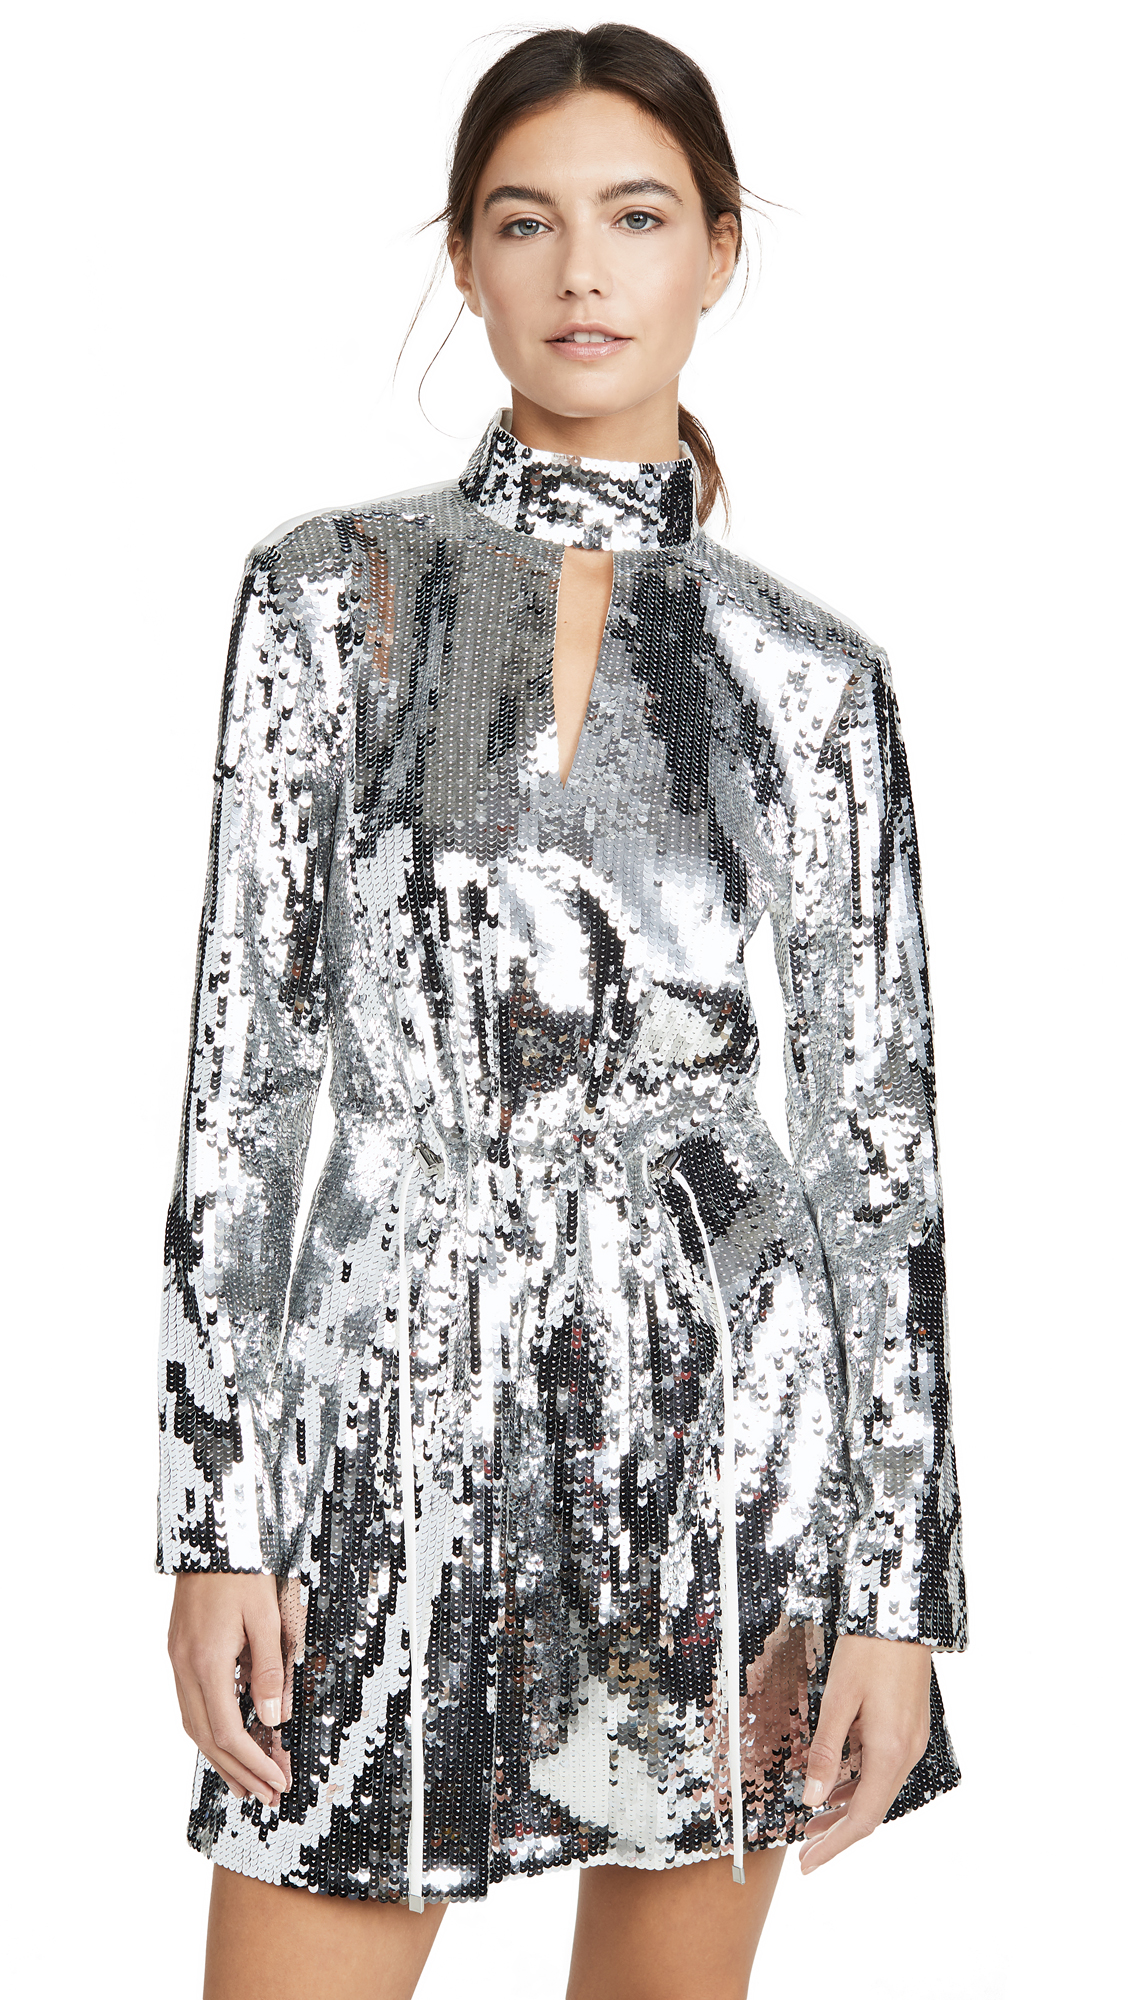 Tibi Avril Sequined Keyhole Short Dress In Silver